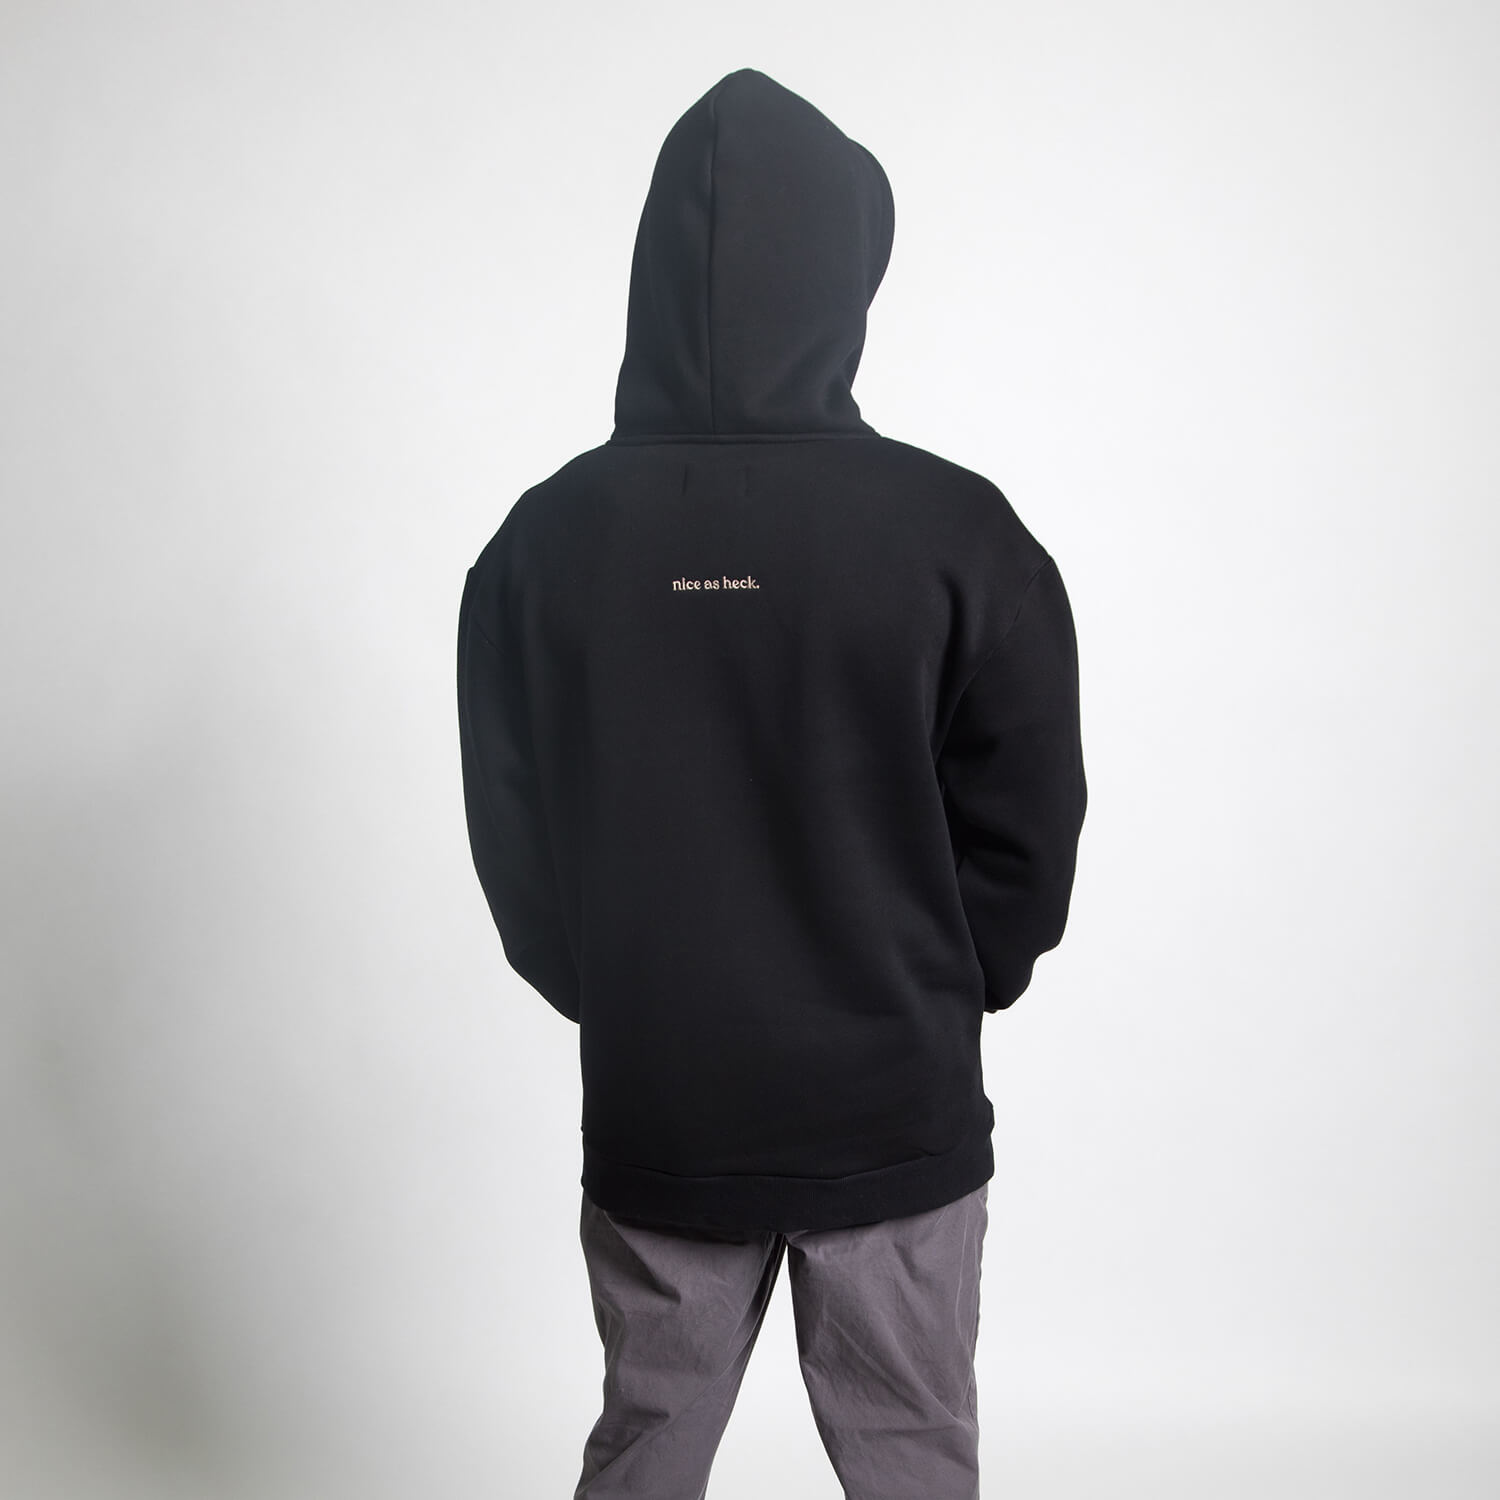 boy wearing trainhopper hoodie